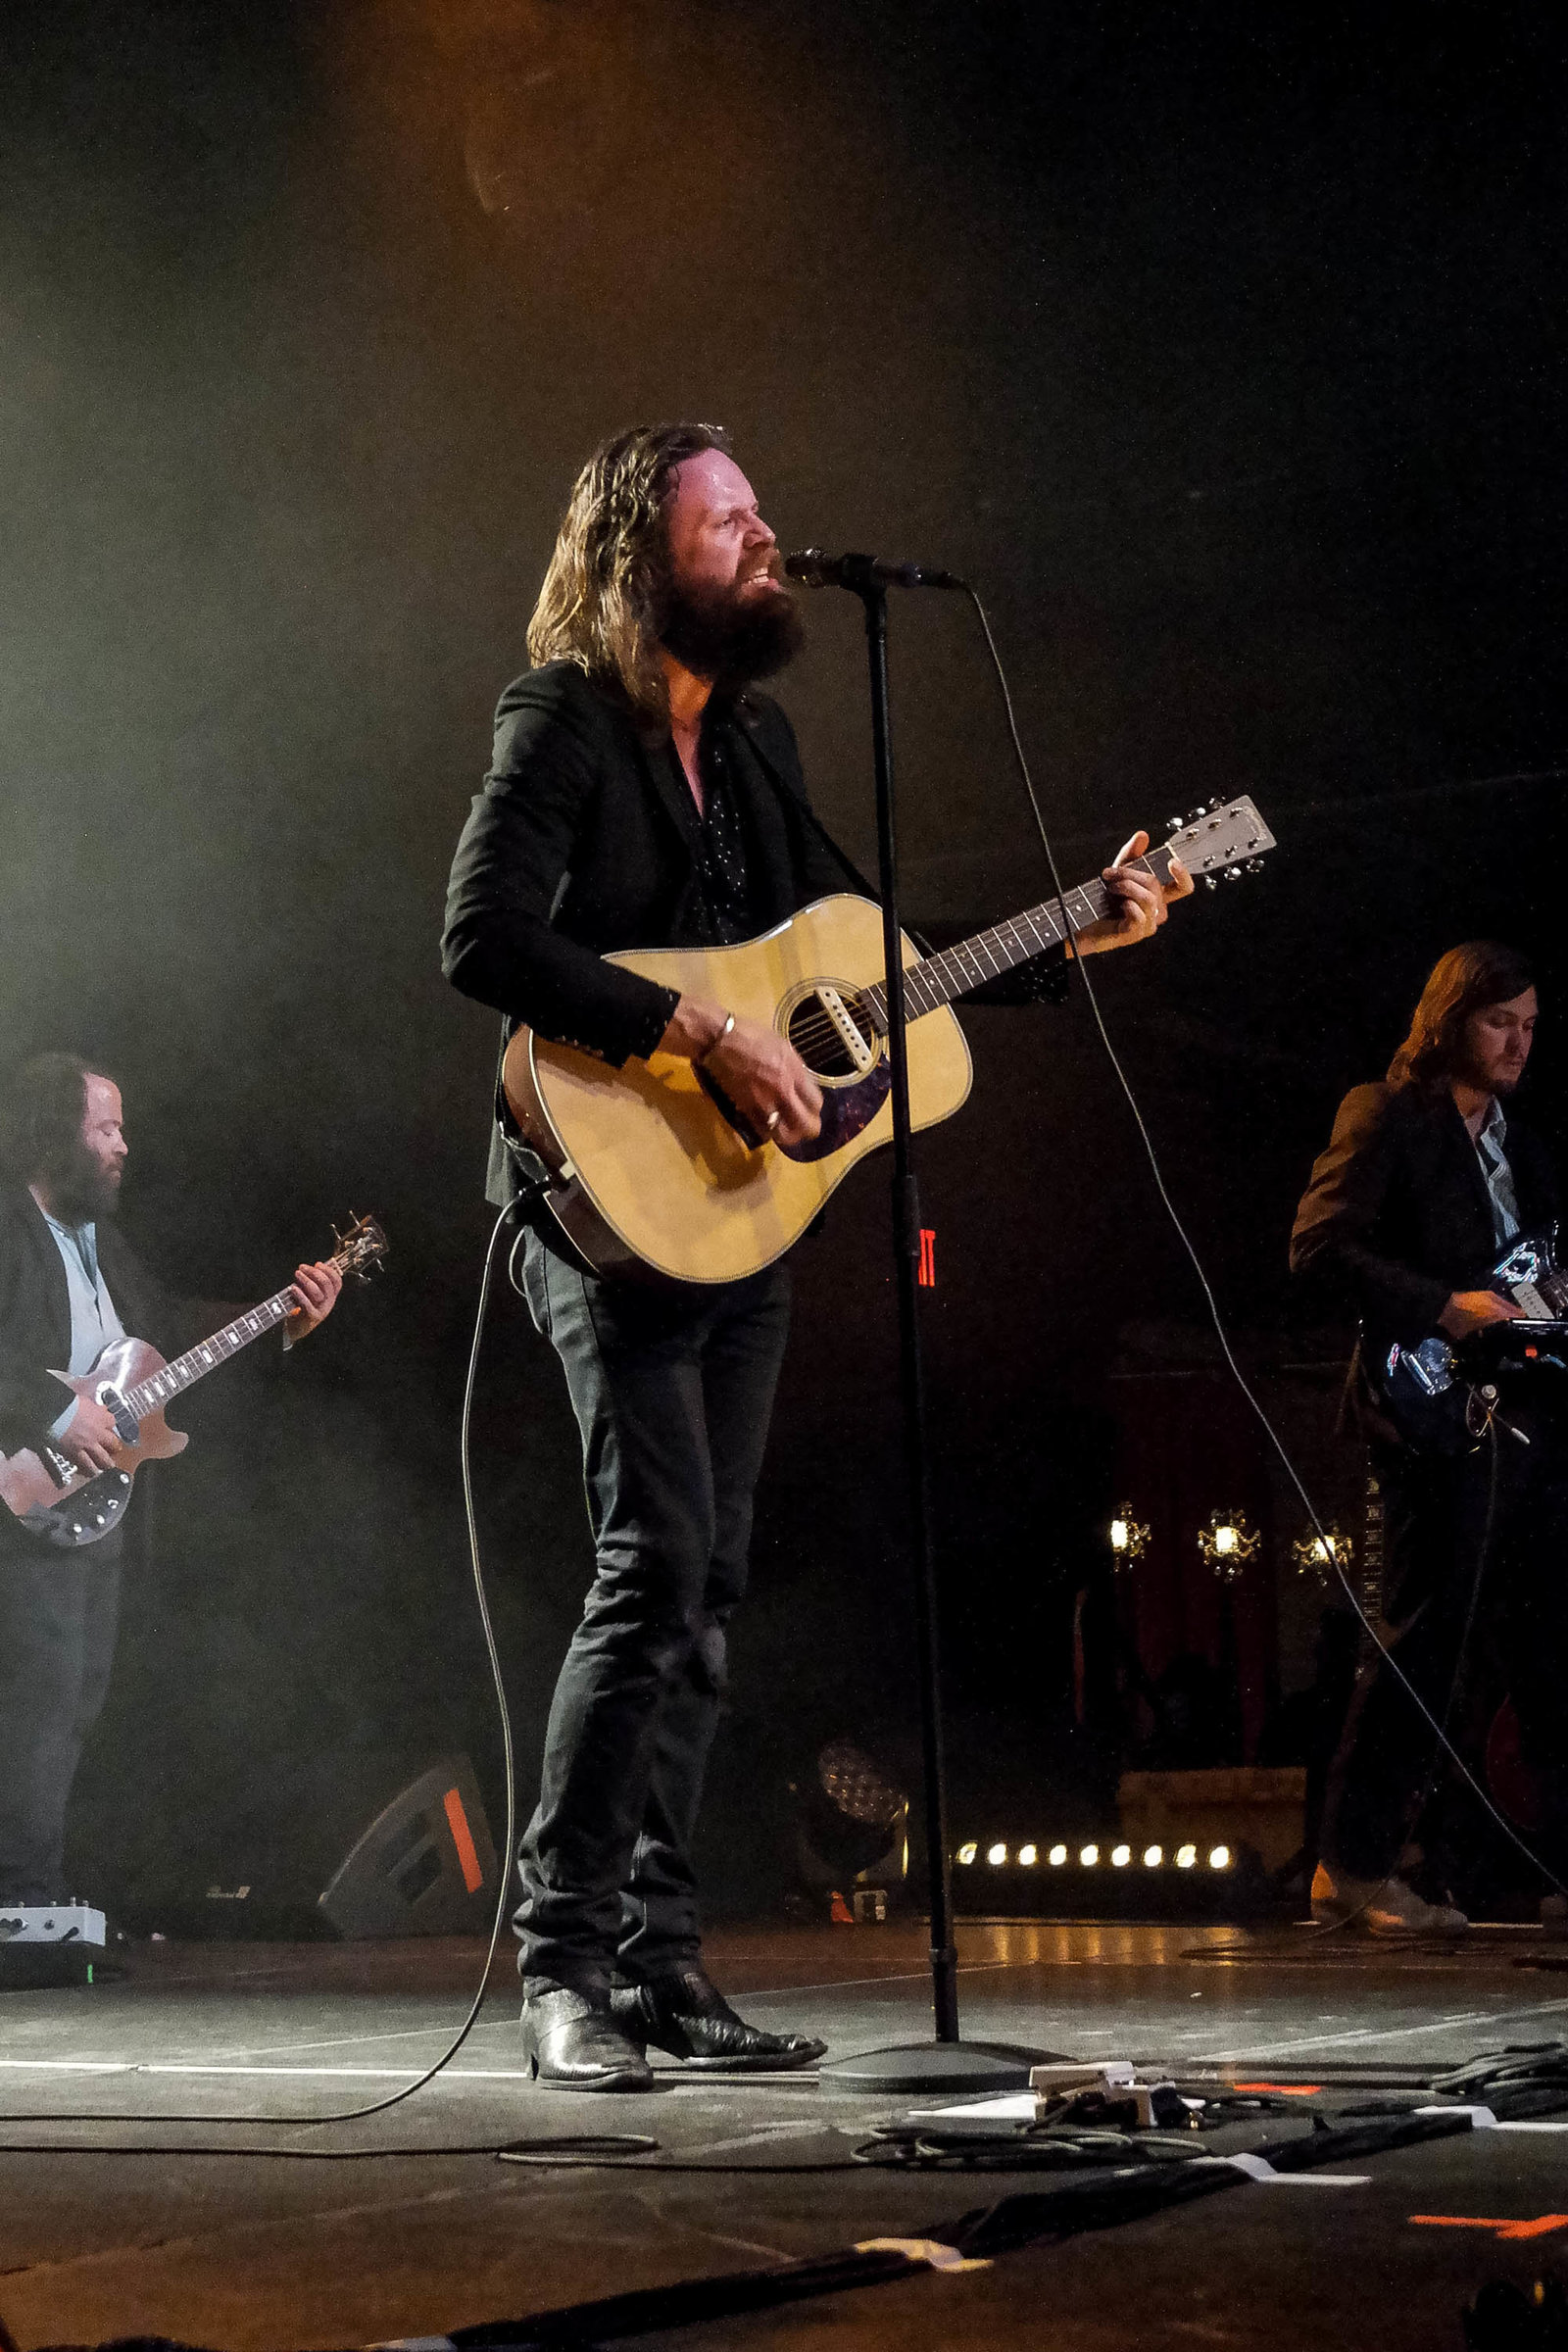 father-john-misty-fillmore-charlotte-nc-live-music-band-concert-kate-timbers-photography-10336